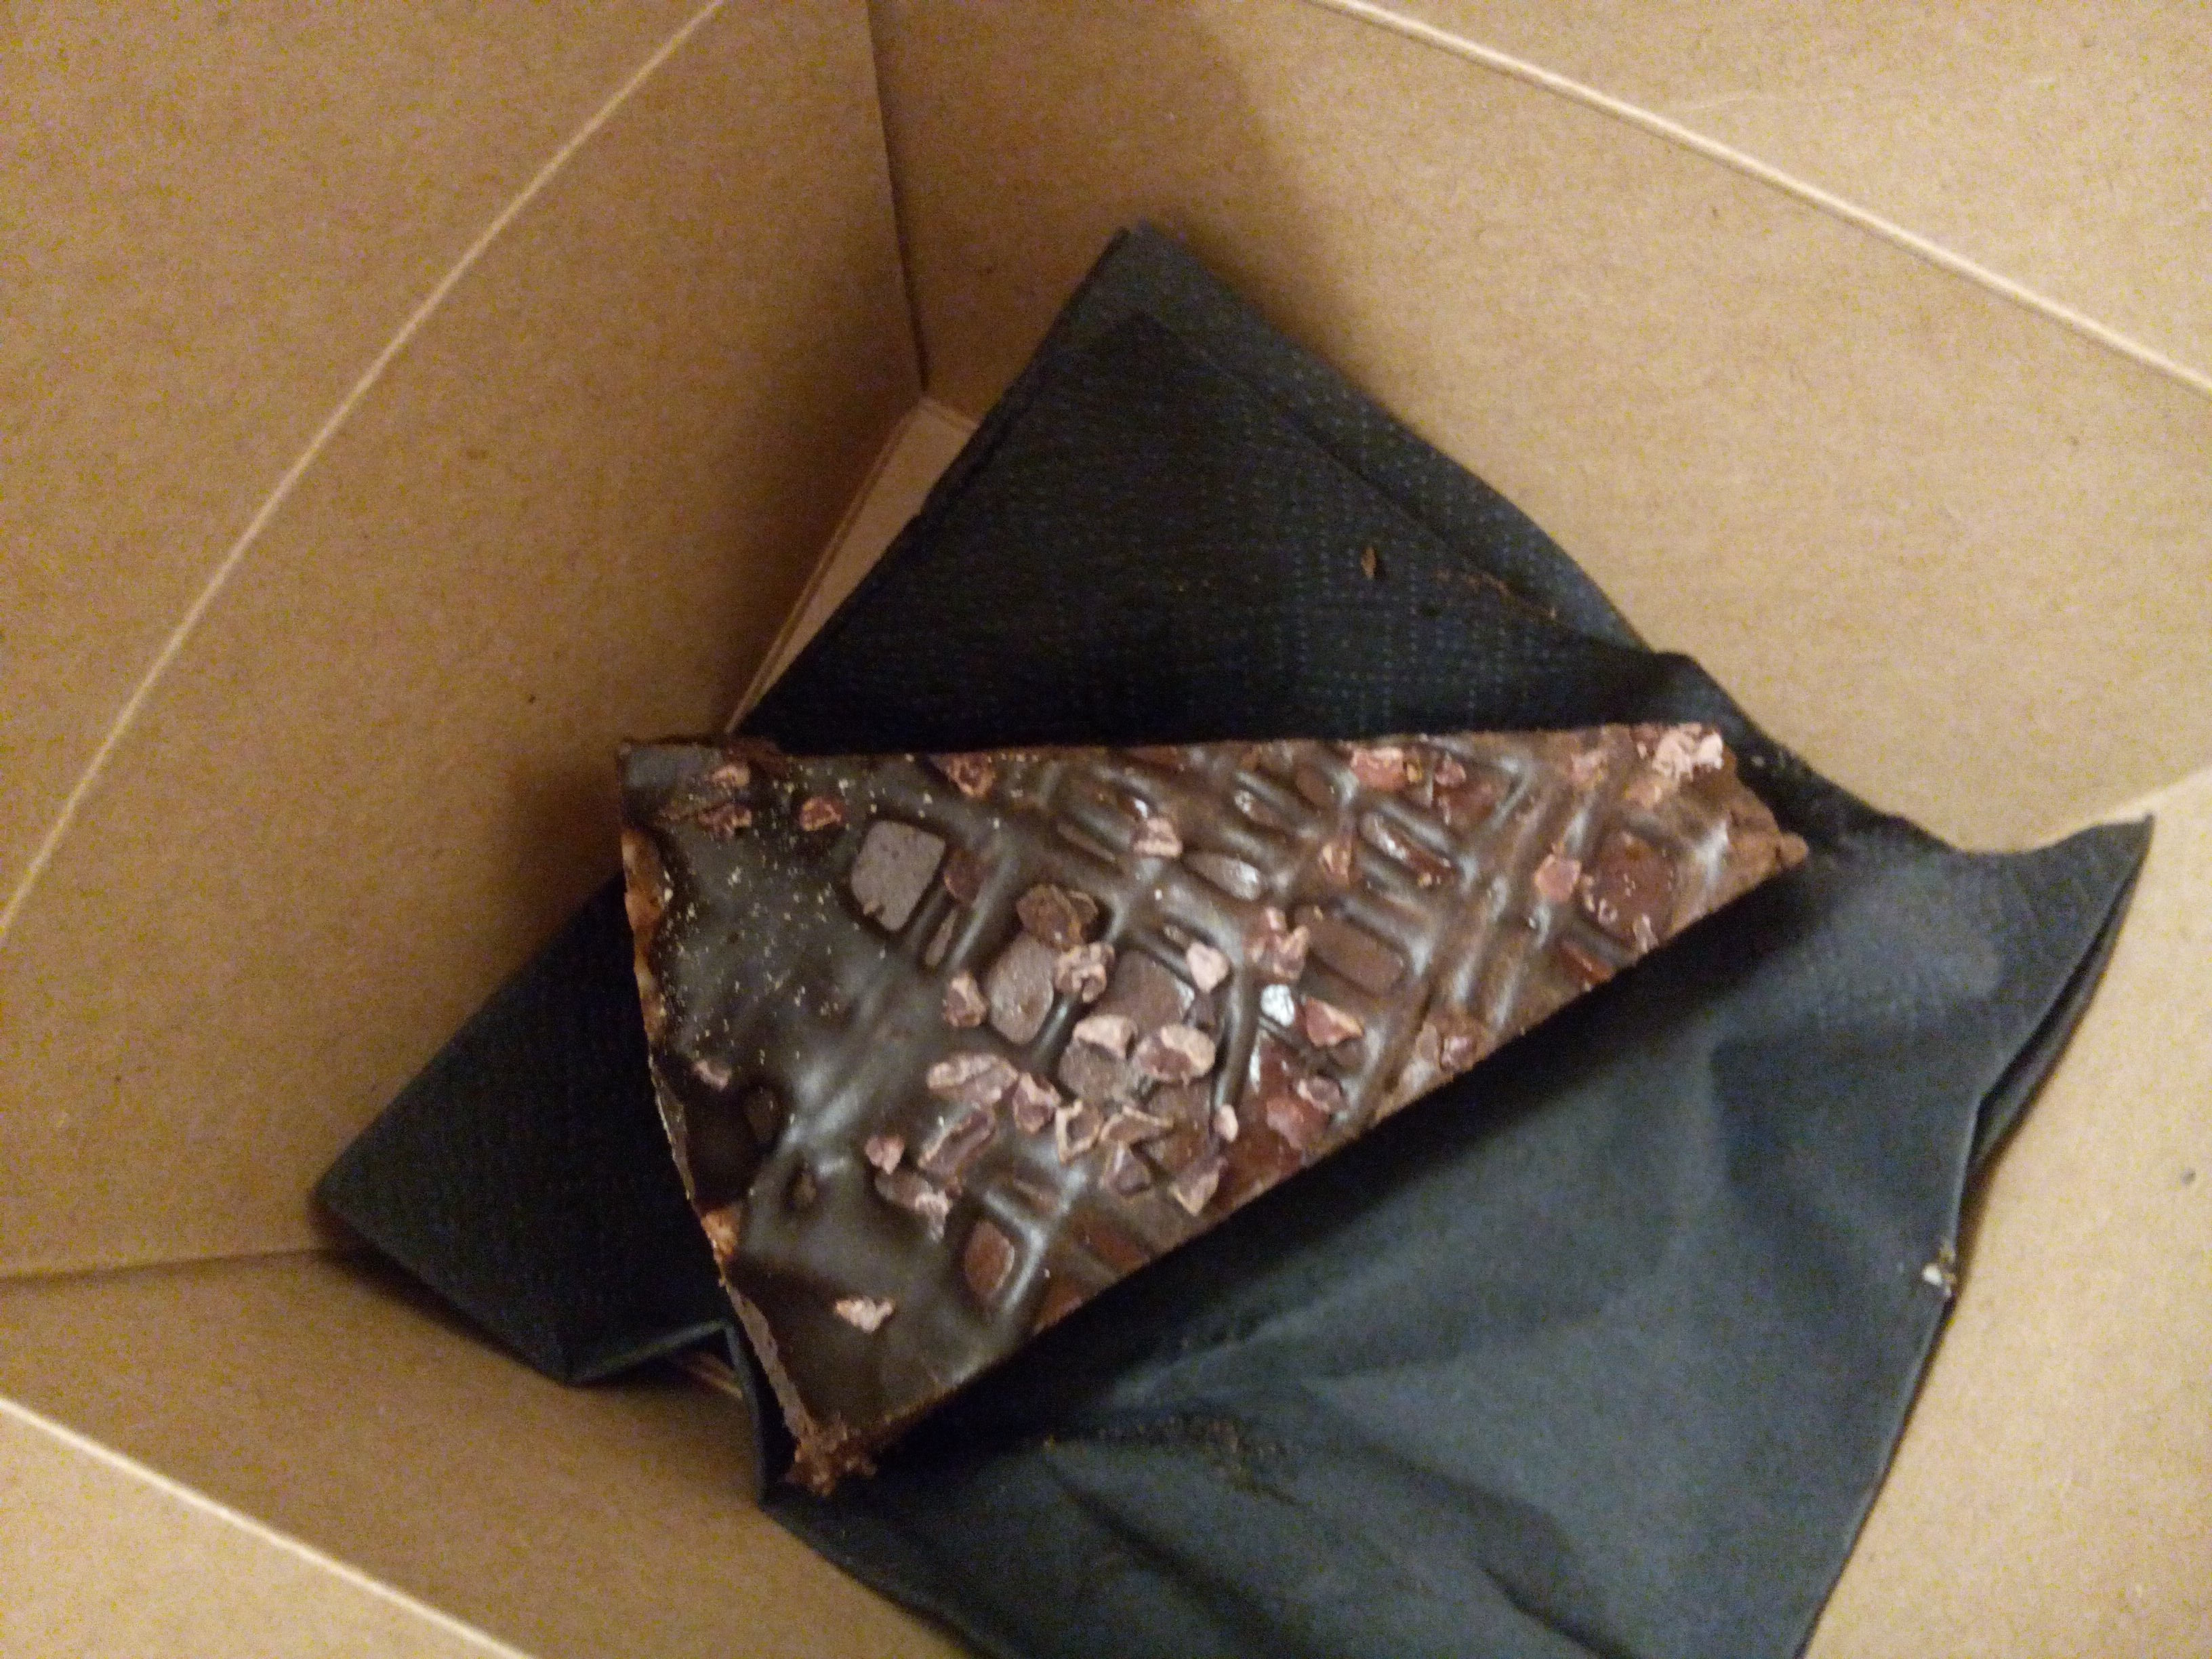 A cardboard box with a black napkin and a slice of chocolate cake from above